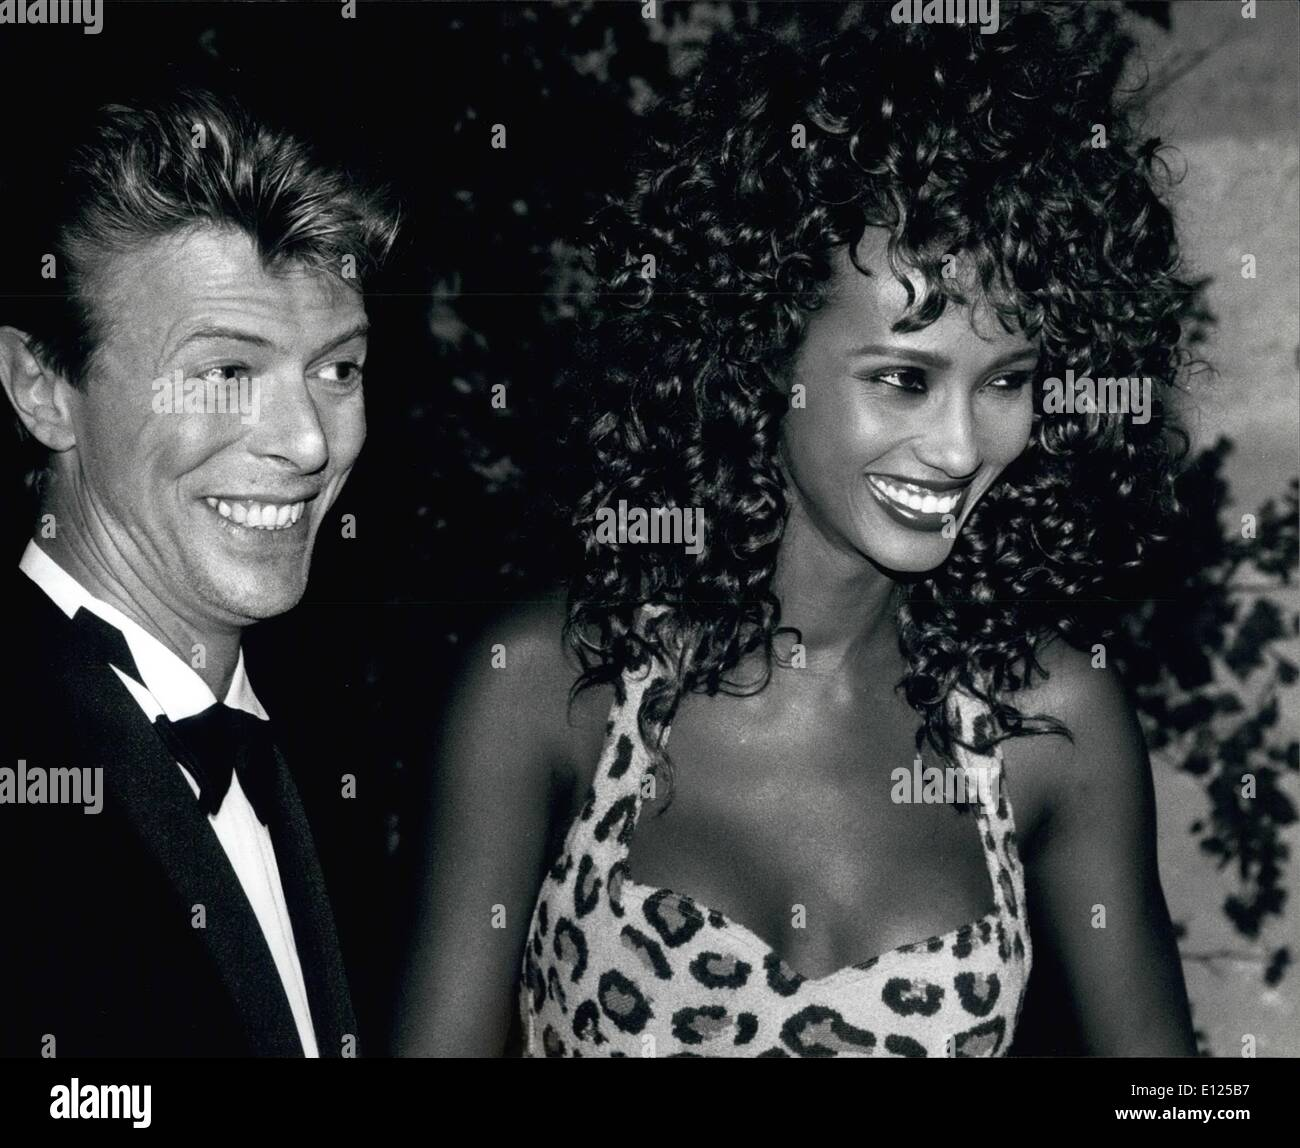 iman and david bowie stockfotos iman and david bowie. Black Bedroom Furniture Sets. Home Design Ideas